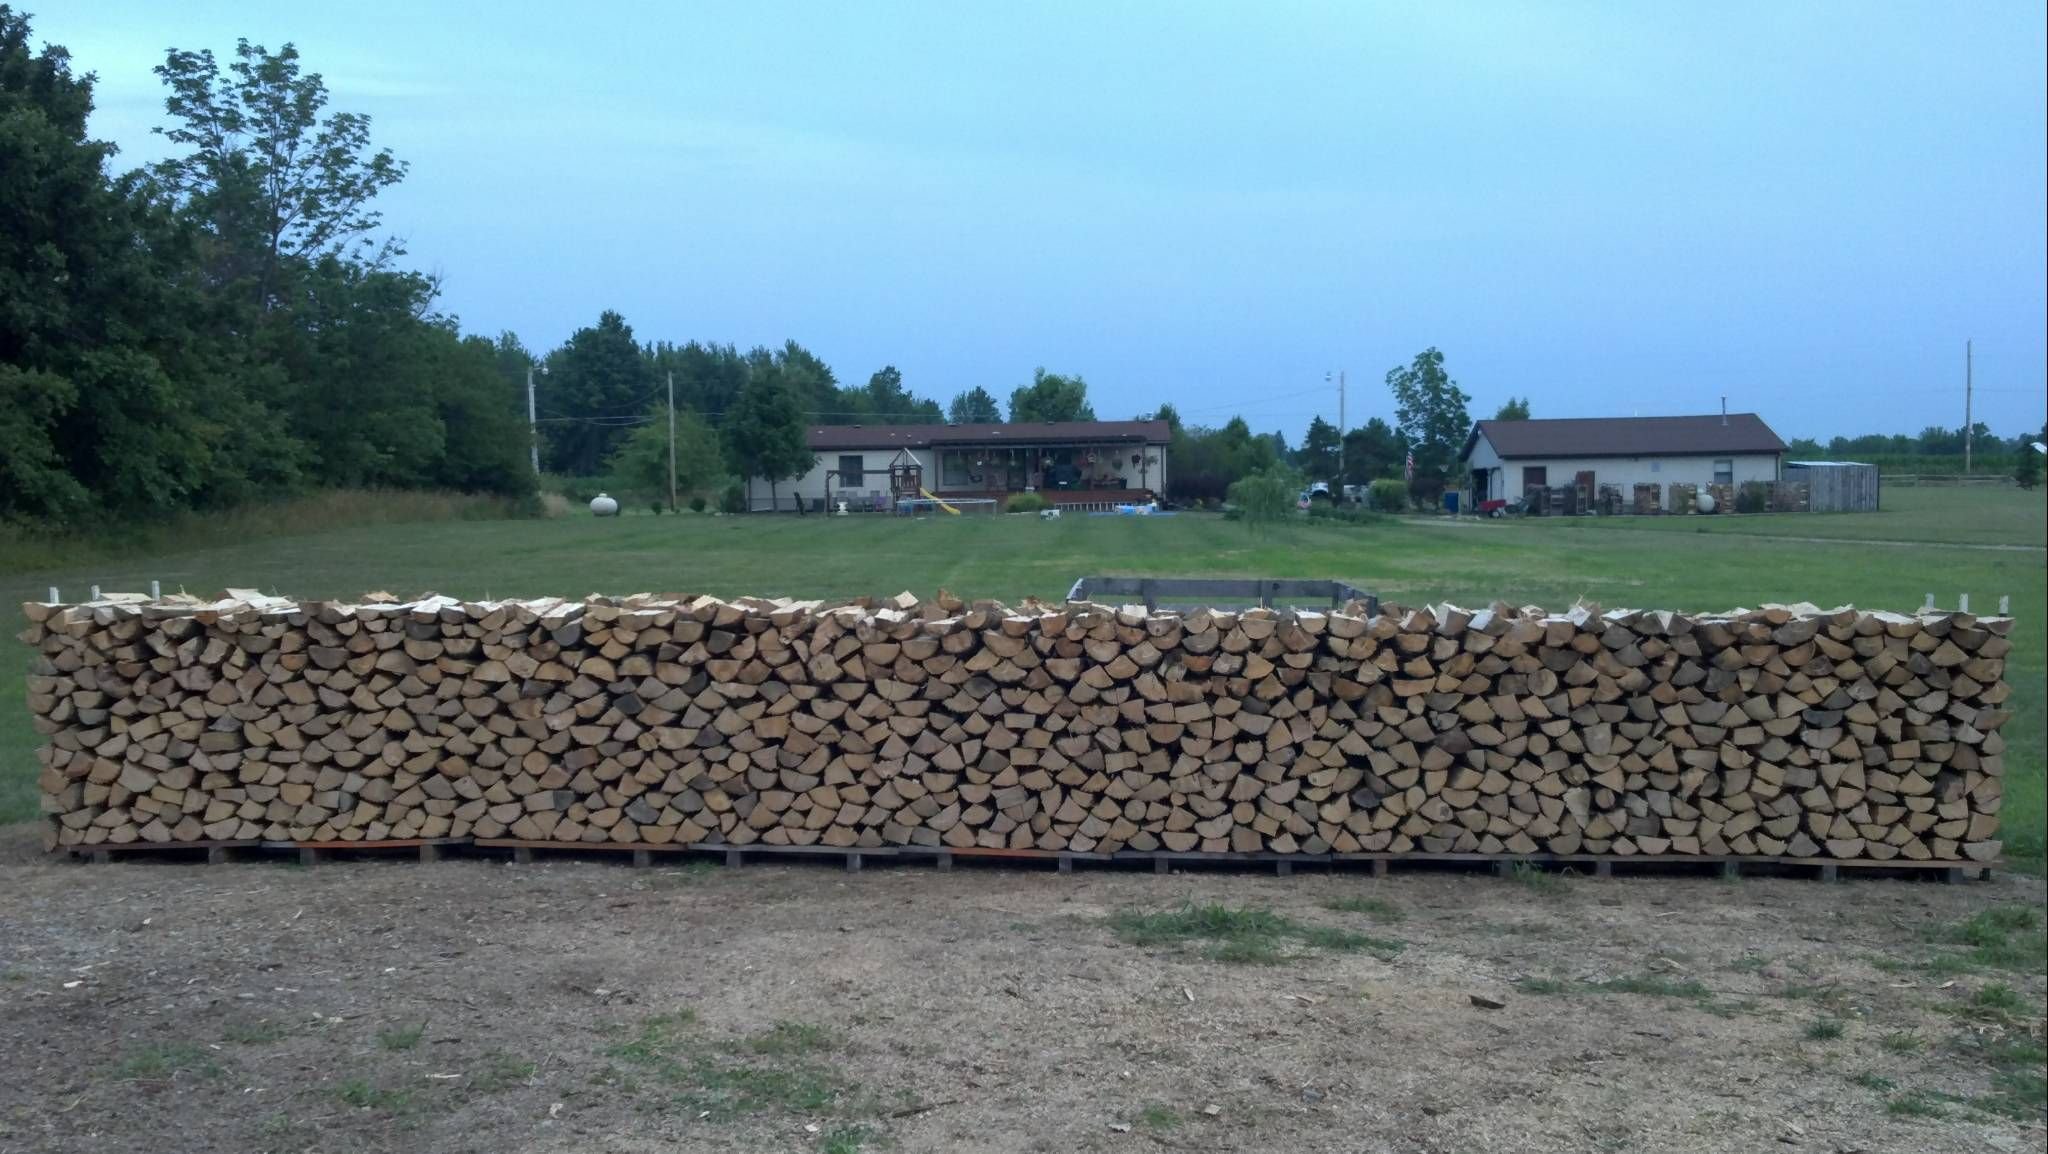 plans or tips for outdoor firewood rack | Hearth.com Forums Home